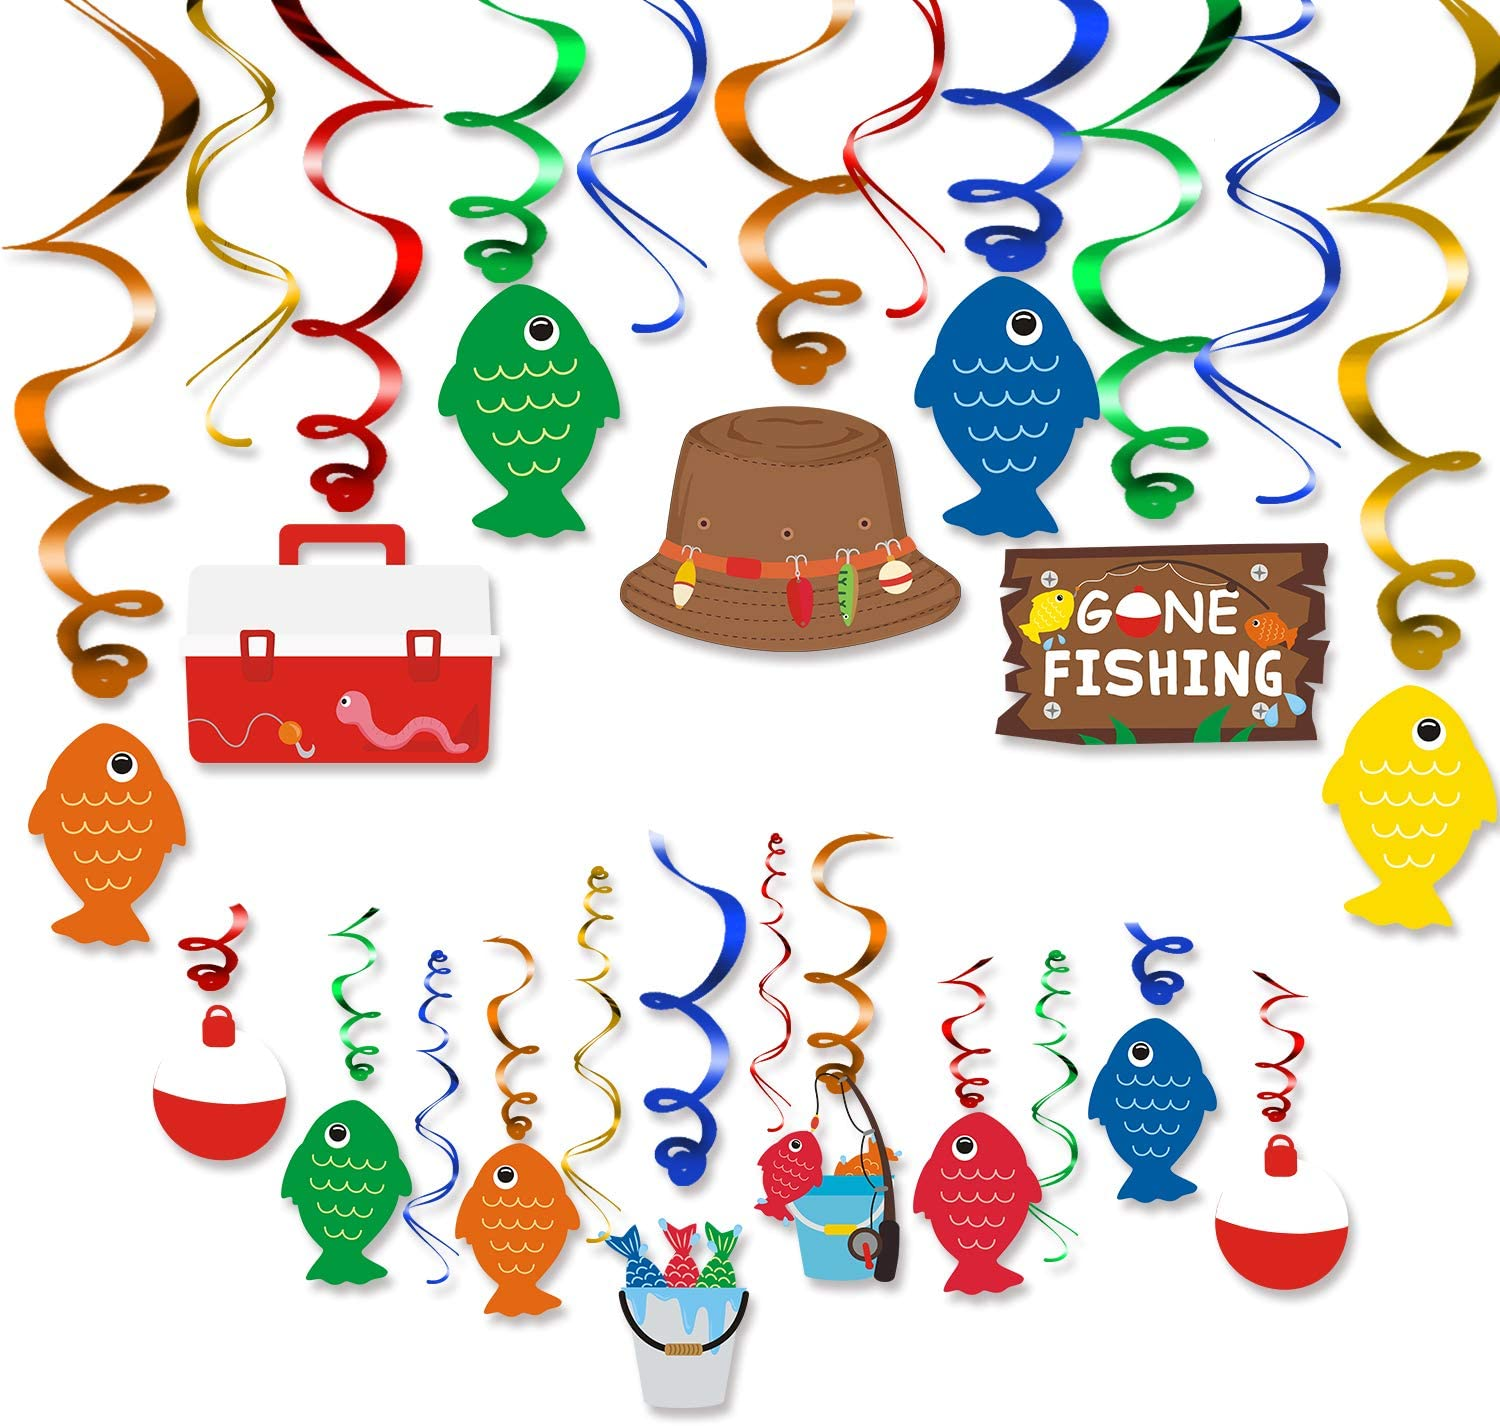 Amazon Com 30ct Gone Fishing Party Hanging Swirl Decorations Kit Little Fisherman The Big One Birthday Baby Shower Photo Props Summer Reel Fun Ideas Ceiling Door Foil Whirls Streamers Supplies Toys Games